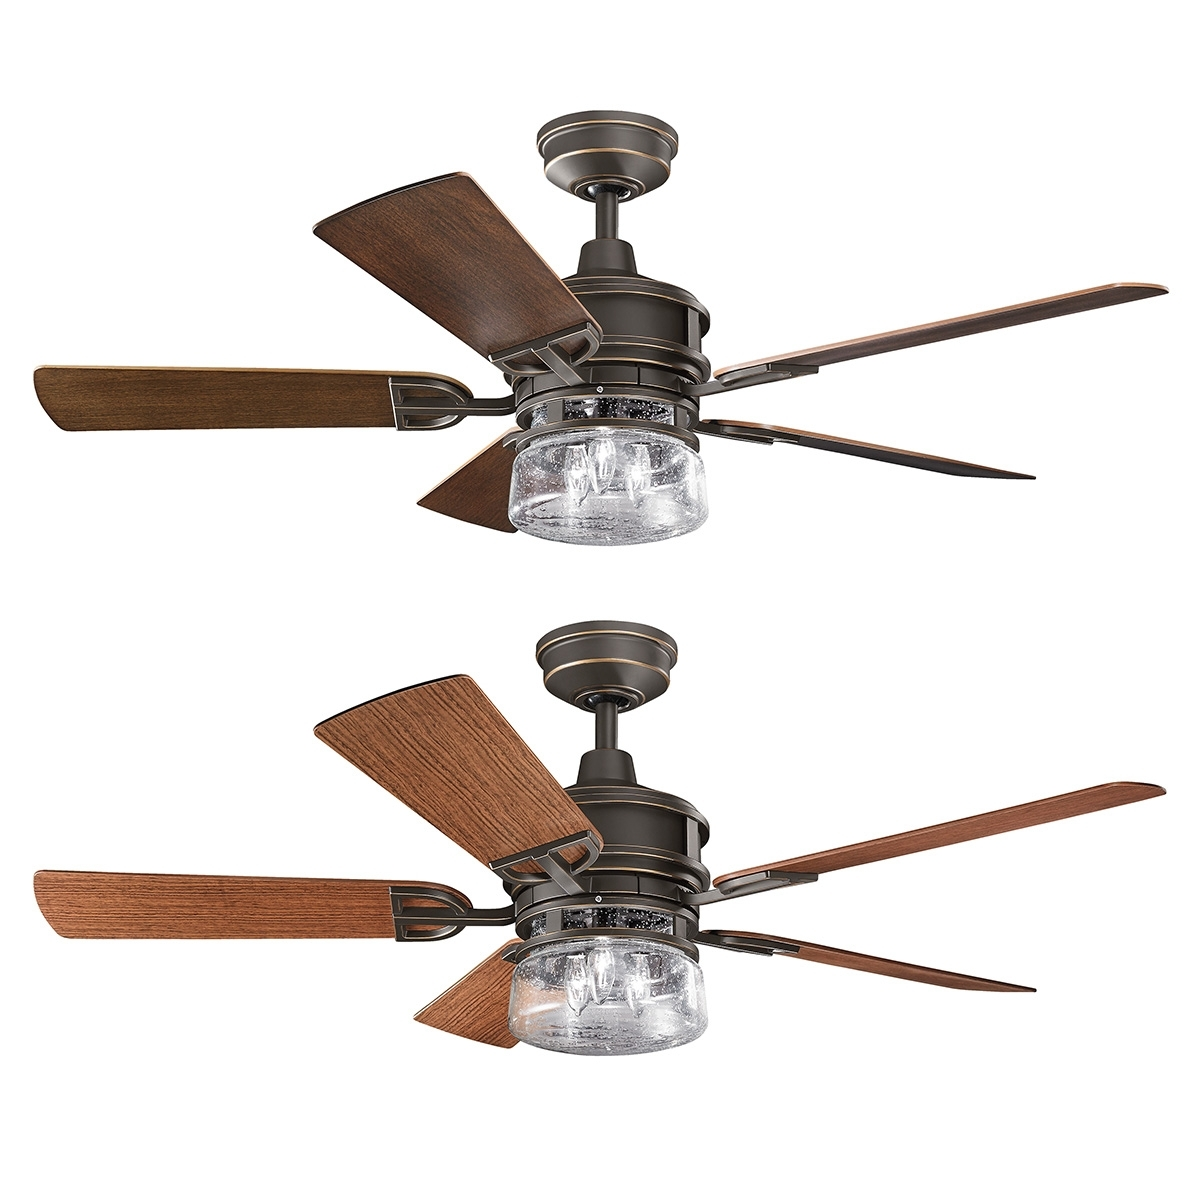 Kichler Outdoor Ceiling Lights With Well Known Outdoor Ceiling Fan With Lightkichler (Gallery 17 of 20)